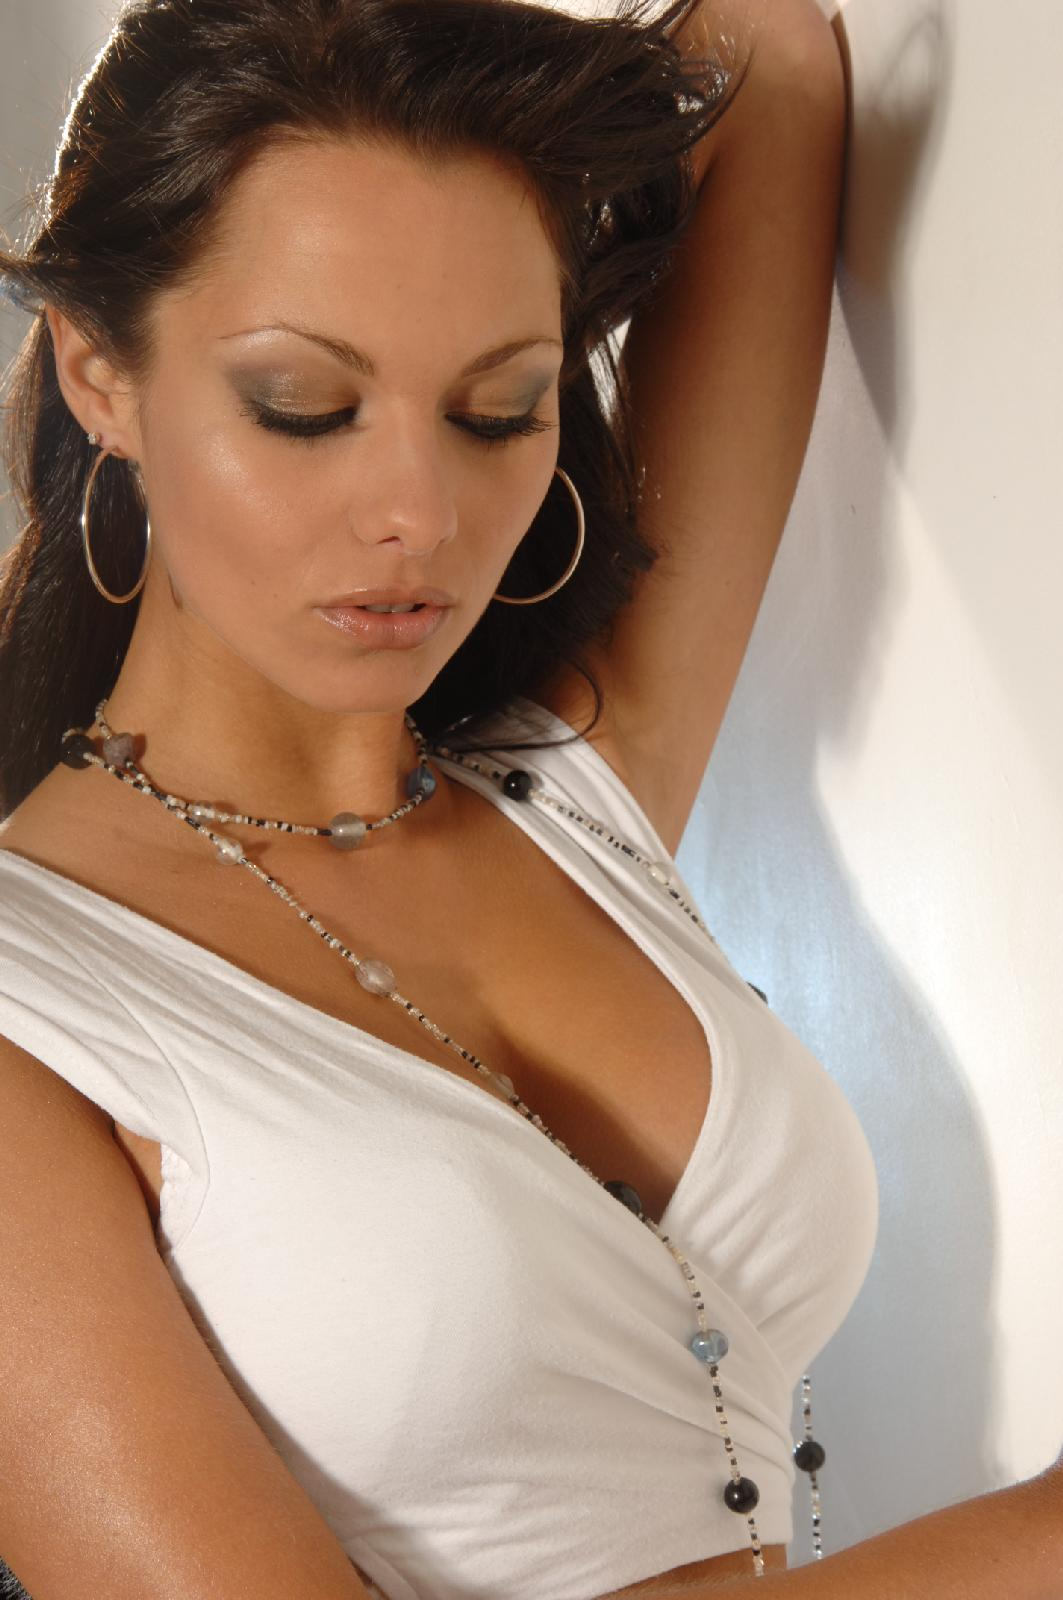 Jessica jane clement pic compilation 6